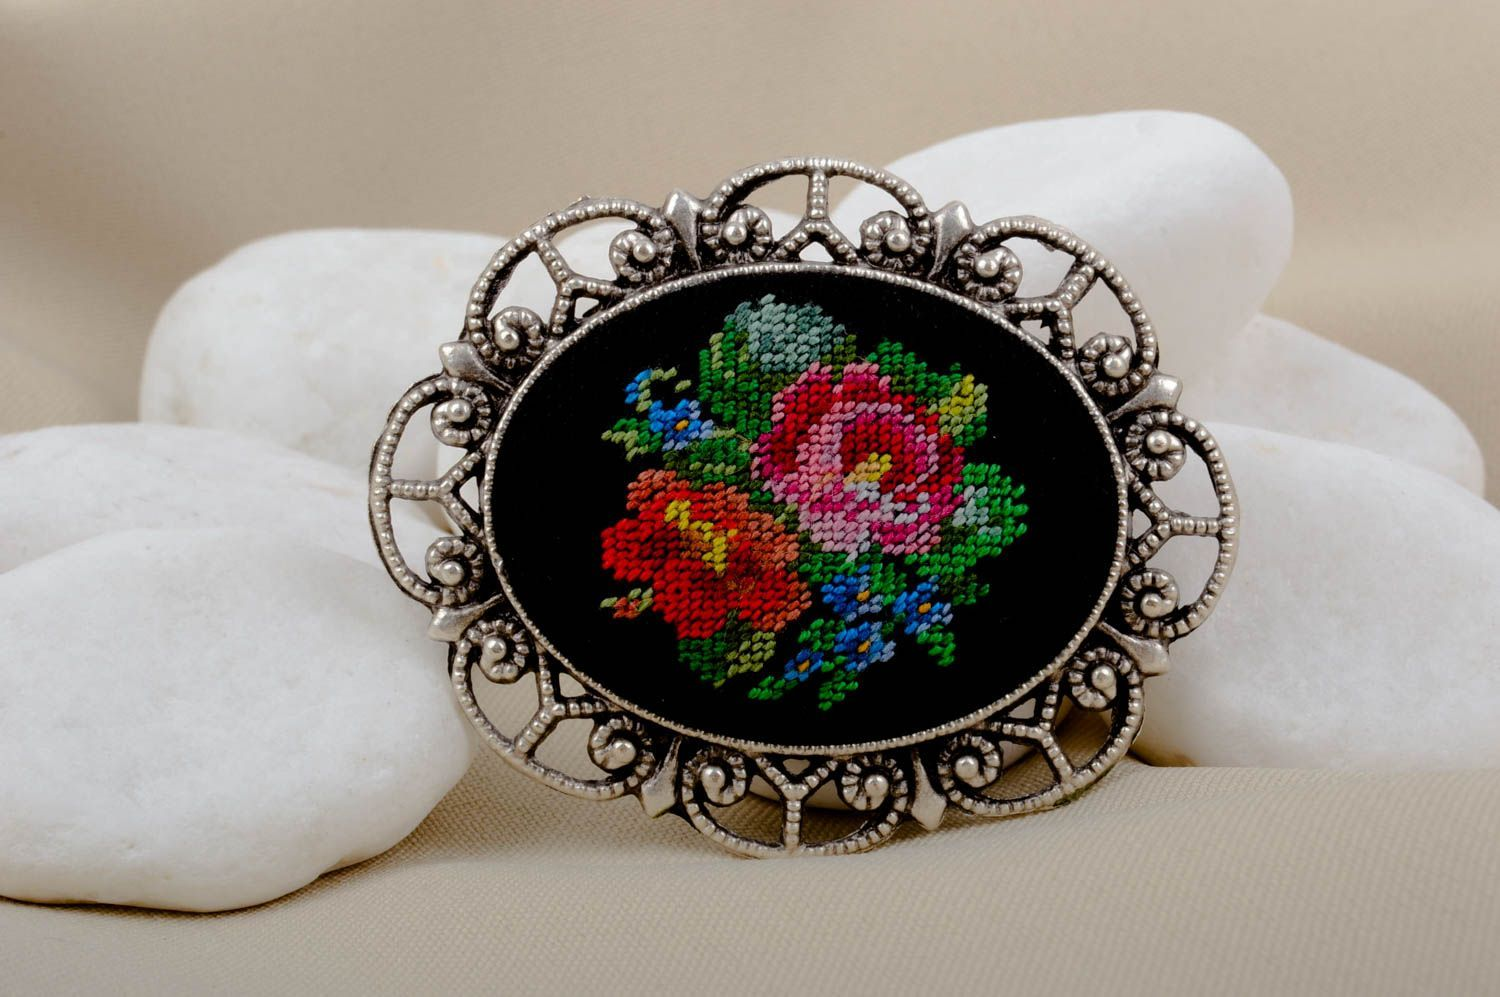 d97038bdfb1 abstraction brooches Handmade vintage accessory stylish beautiful brooch  unusual embroidered brooch - MADEheart.com